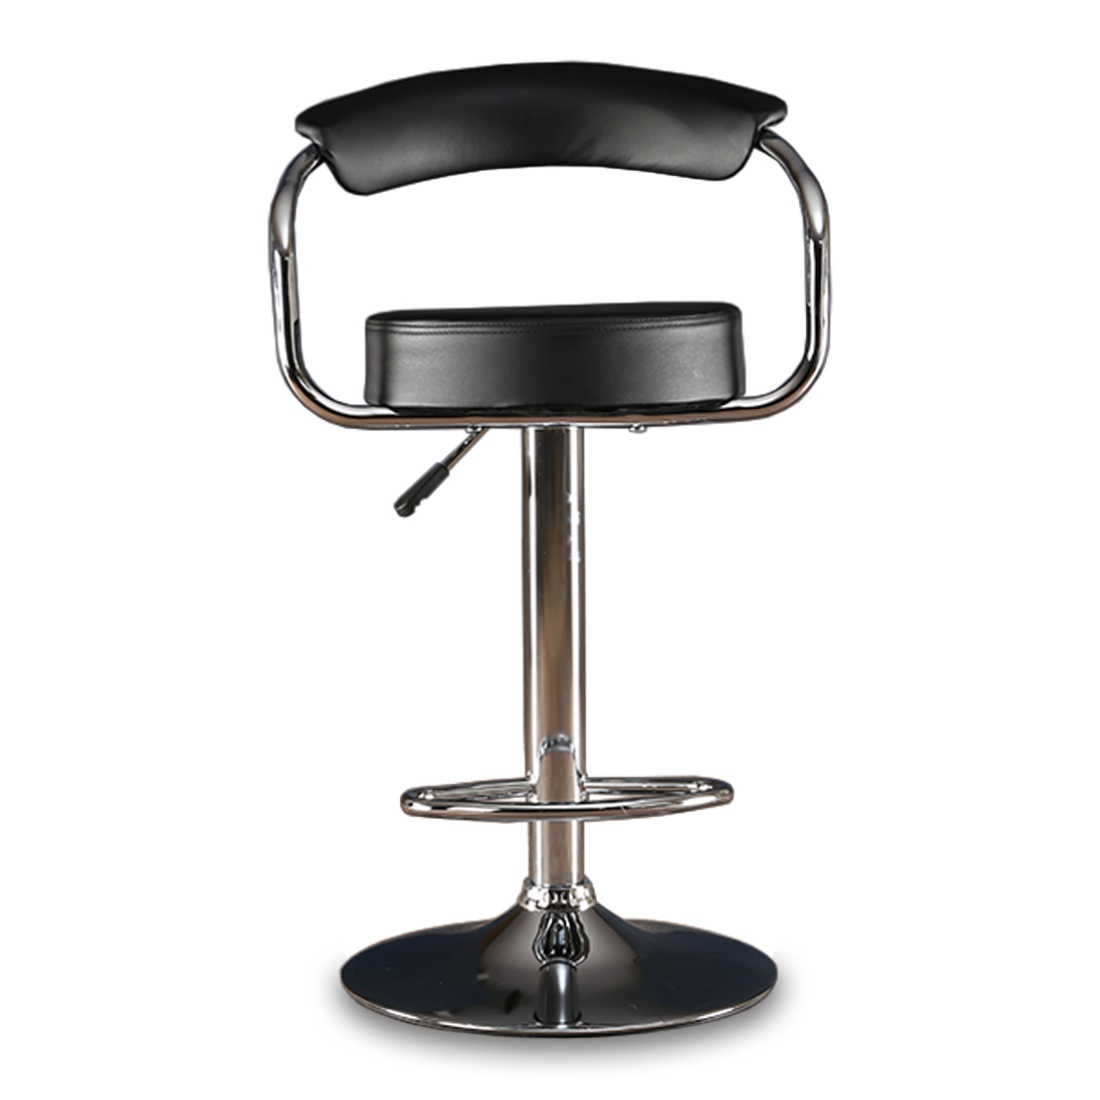 Nook Bar Stool in Black Colour by HomeTown